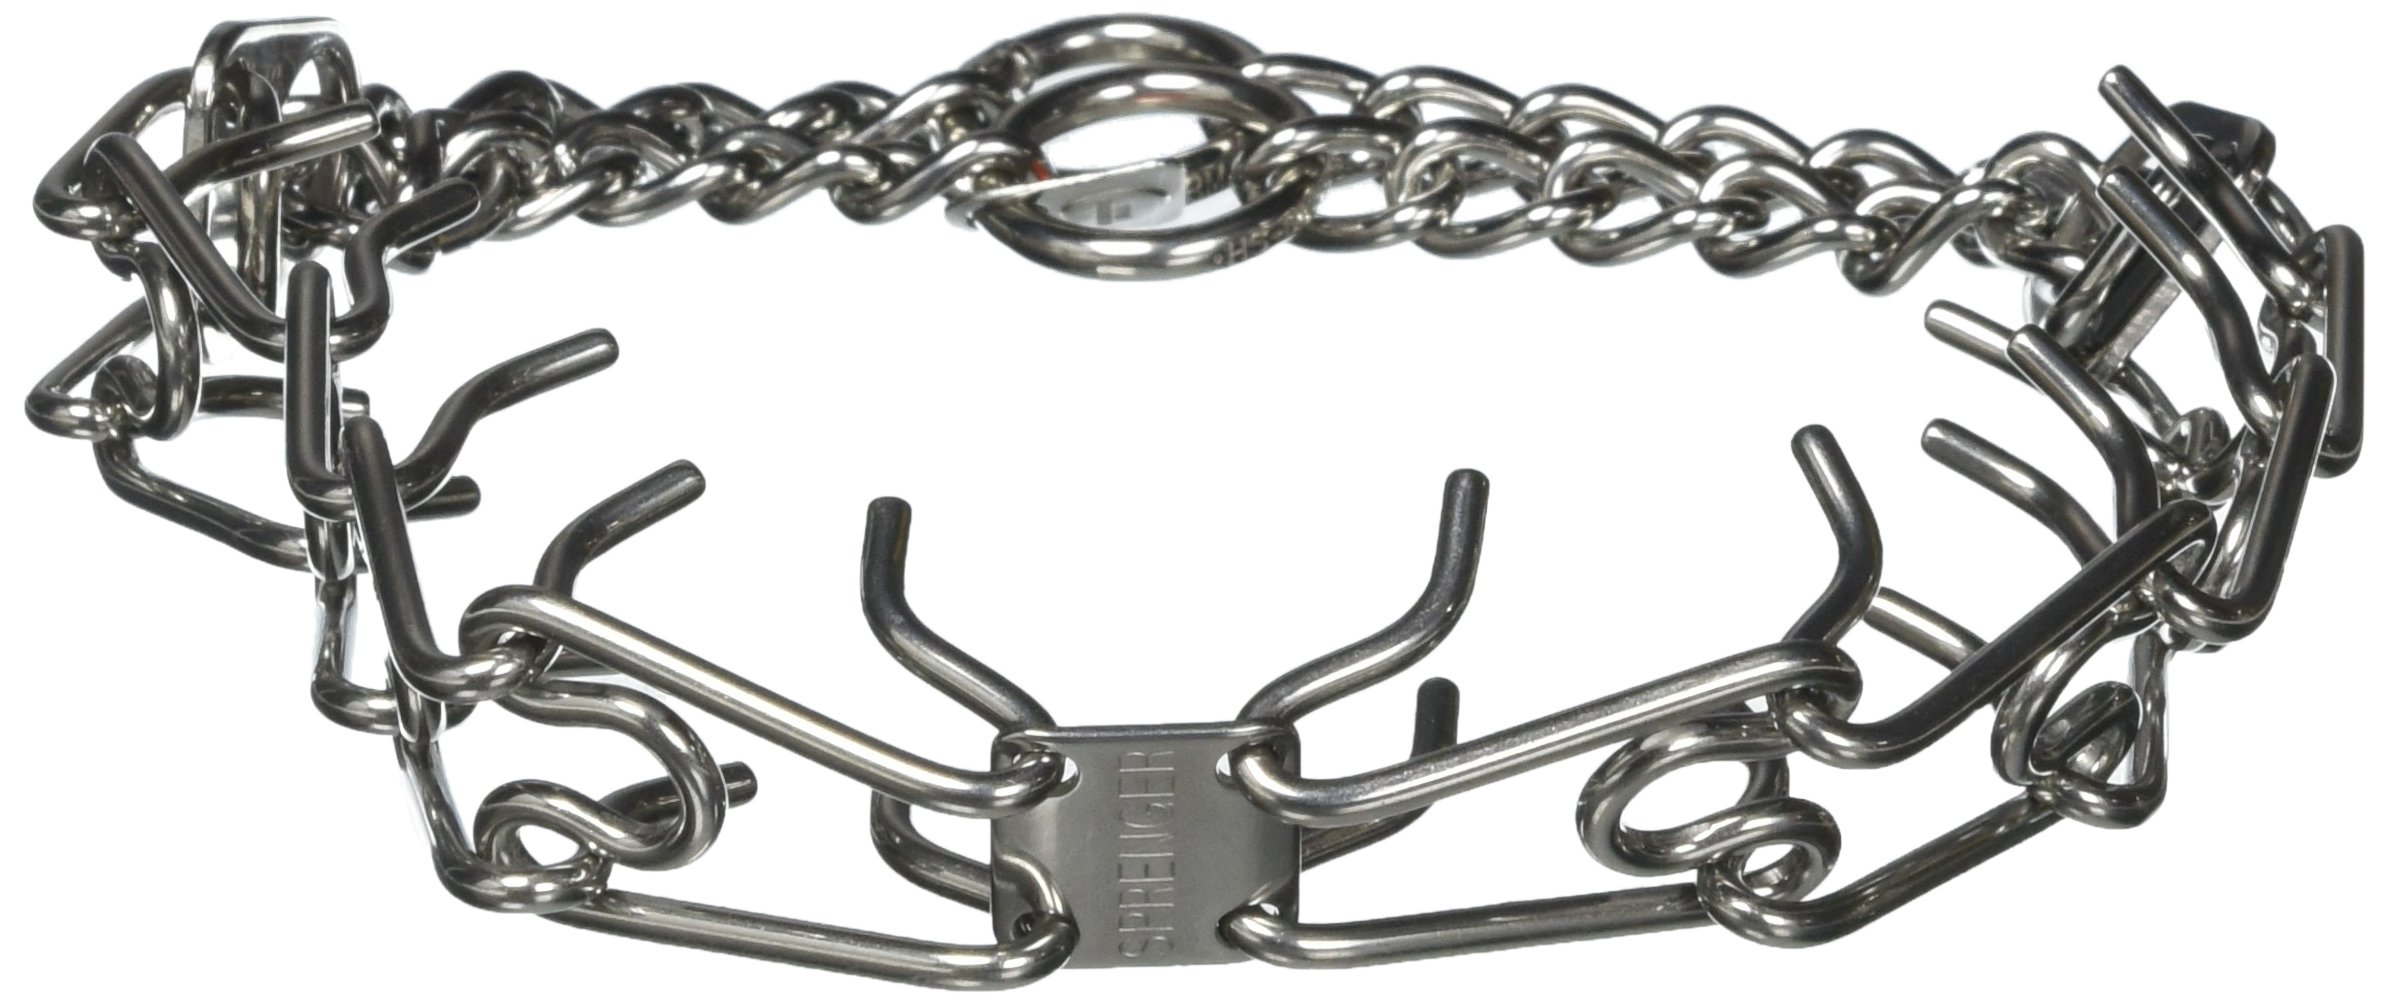 Herm Sprenger Stainless Steel Prong Training Collar Without Swivel 23'' Medium 3.2mm by Herm Sprenger